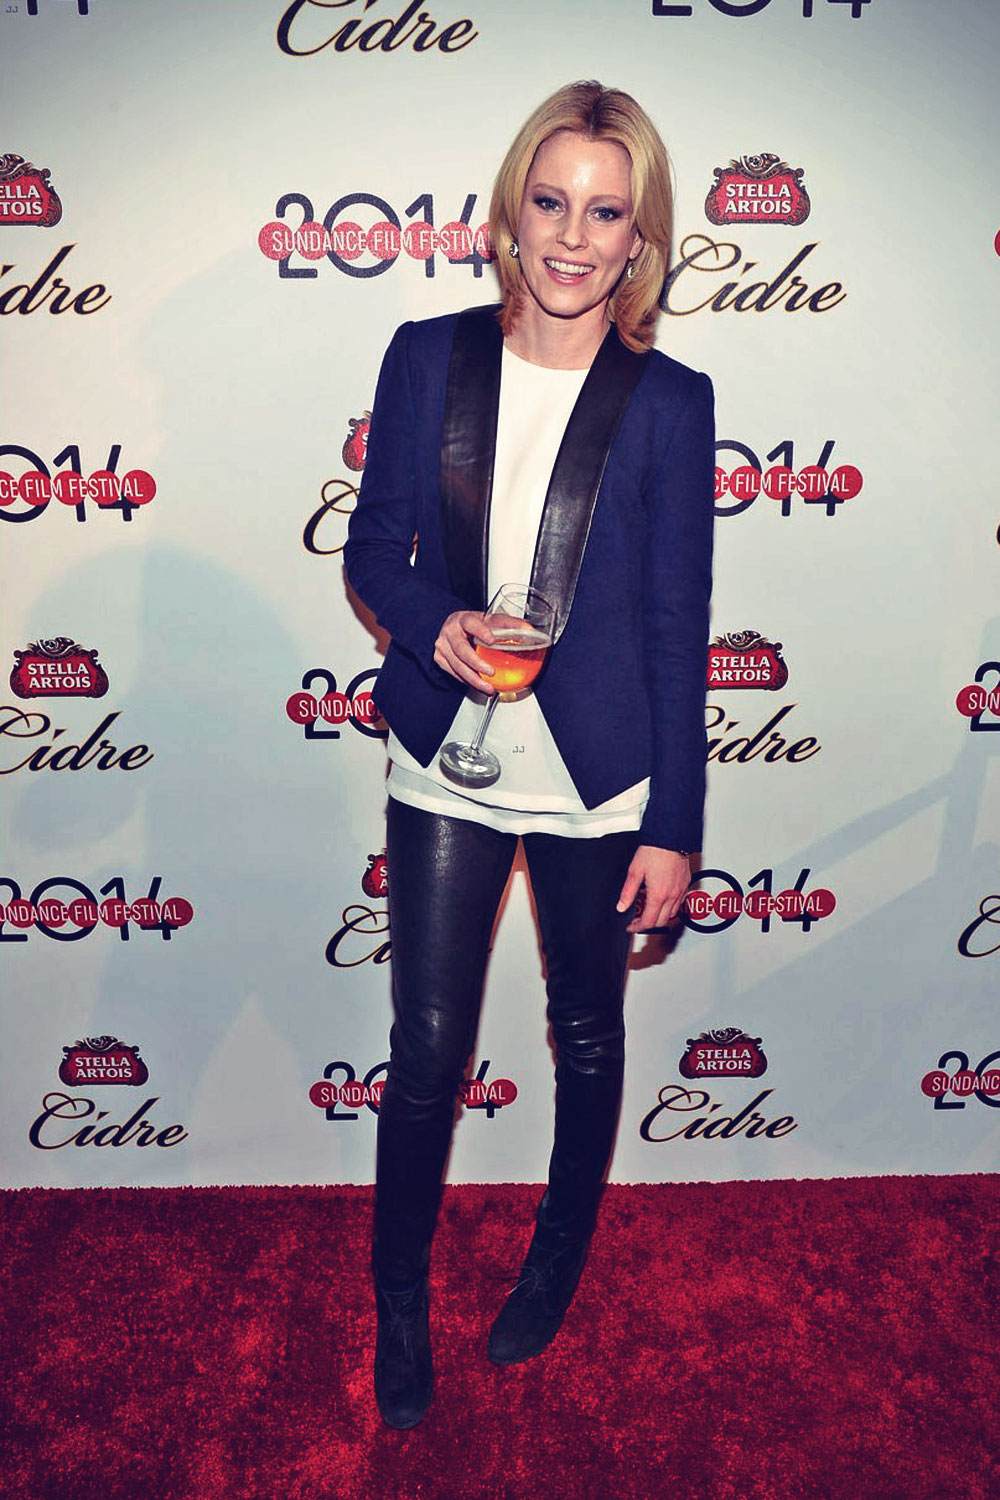 Elizabeth Banks keeps it chic while attending the Stella Artois Cidre National Launch Party